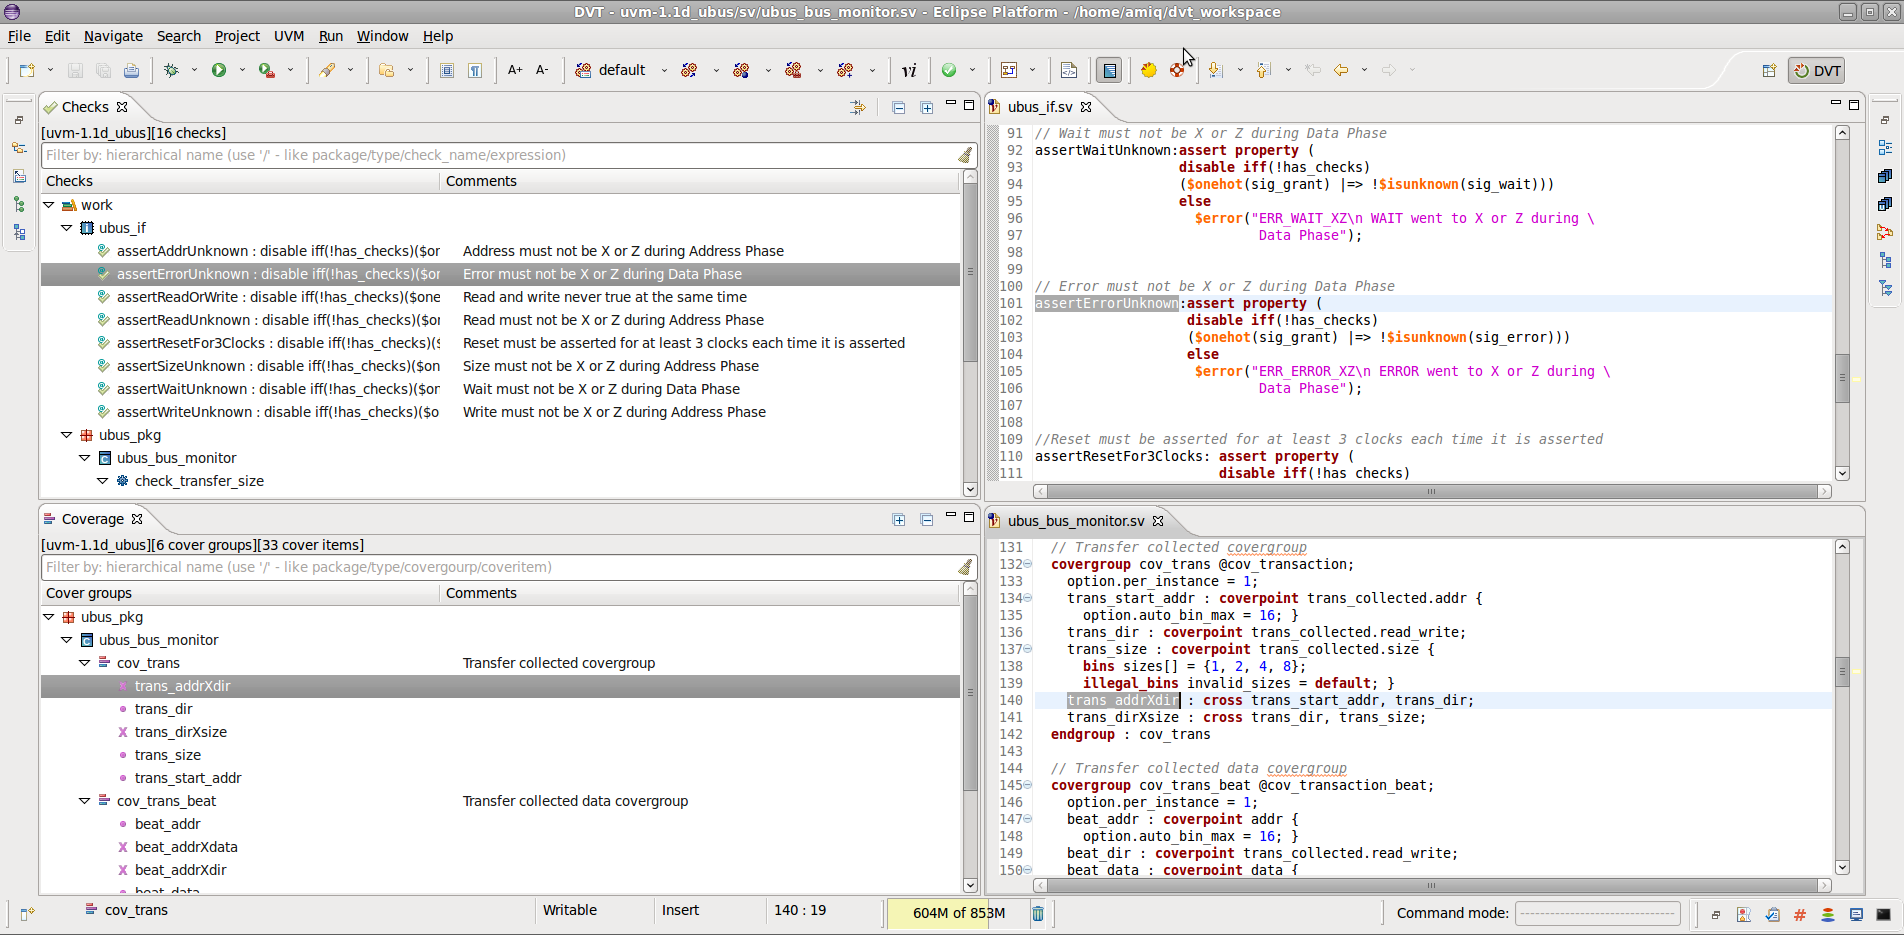 Explore Checks and Coverage with DVT Eclipse IDE